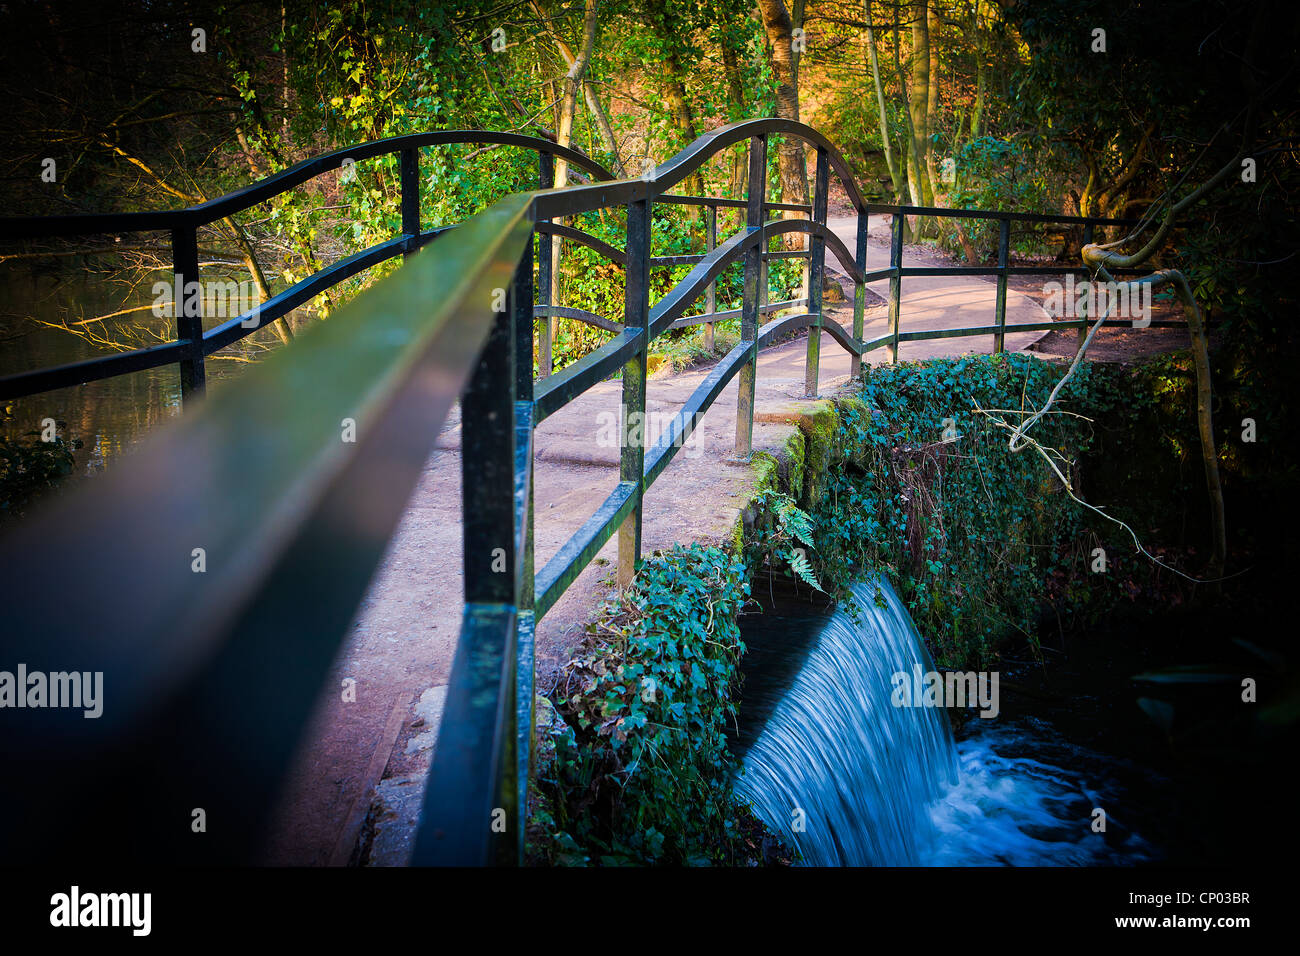 Wishing Bridge with metal handrails over the weir between Lymm Upper and Middle Dams at Lymm Dam, Lymm, Cheshire, - Stock Image